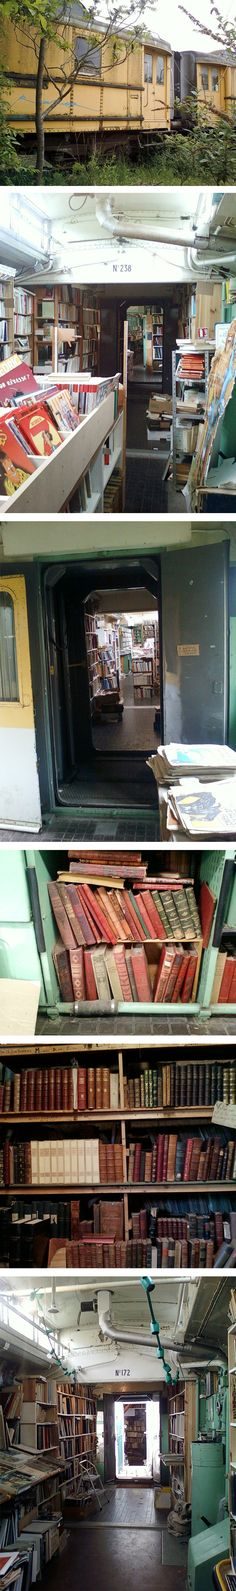 A bookstore on a TRAIN!